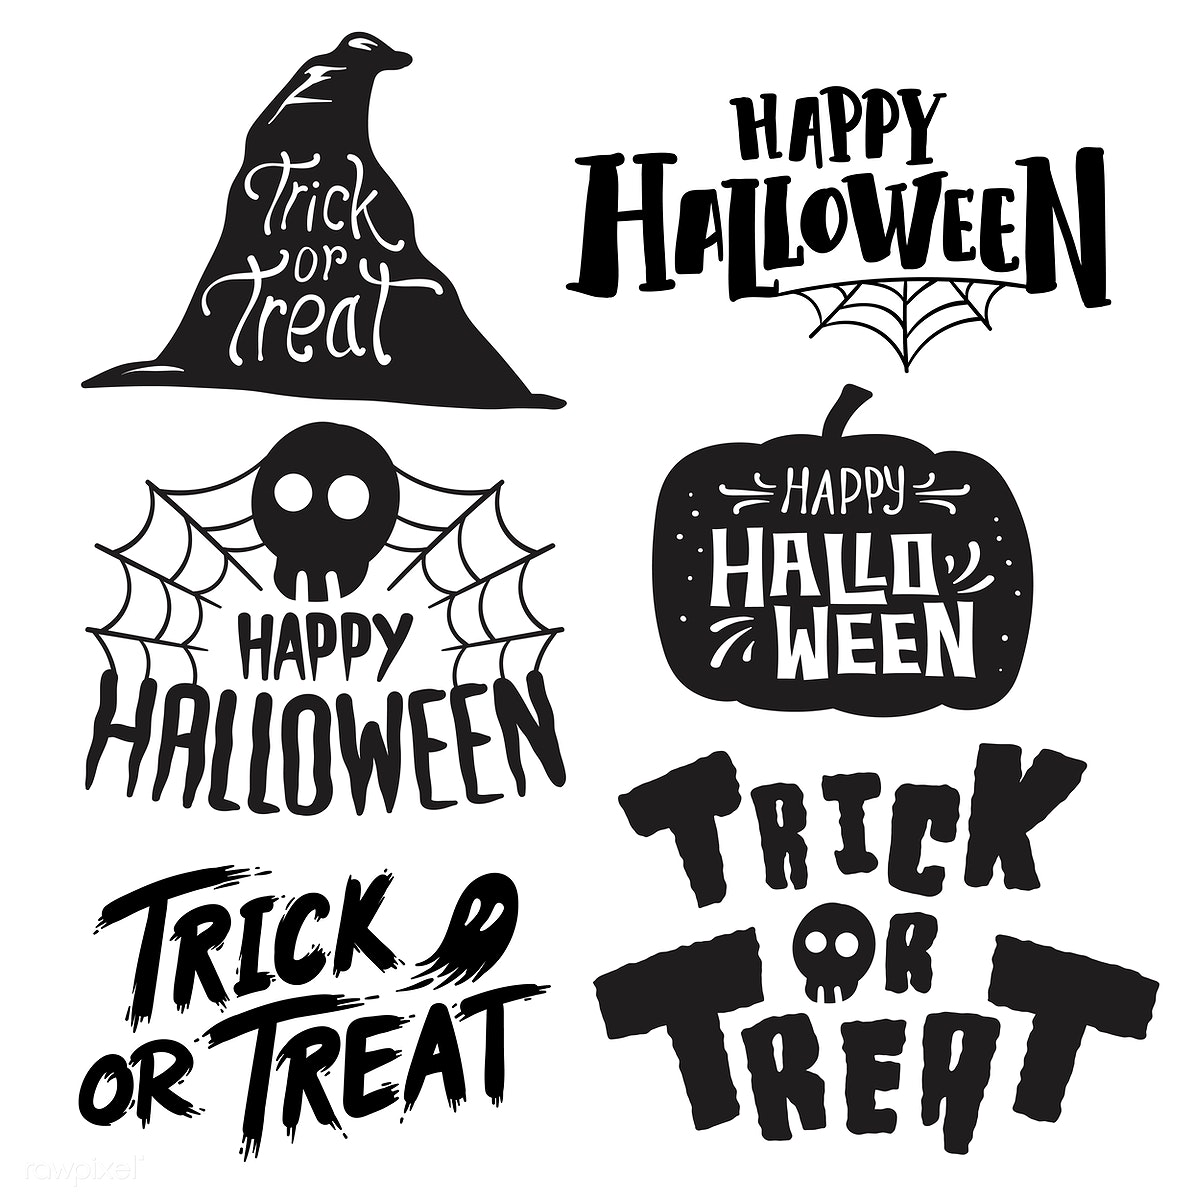 Halloween Vector Black And White.Set Of Happy Halloween Vectors Free Stock Illustration 497014